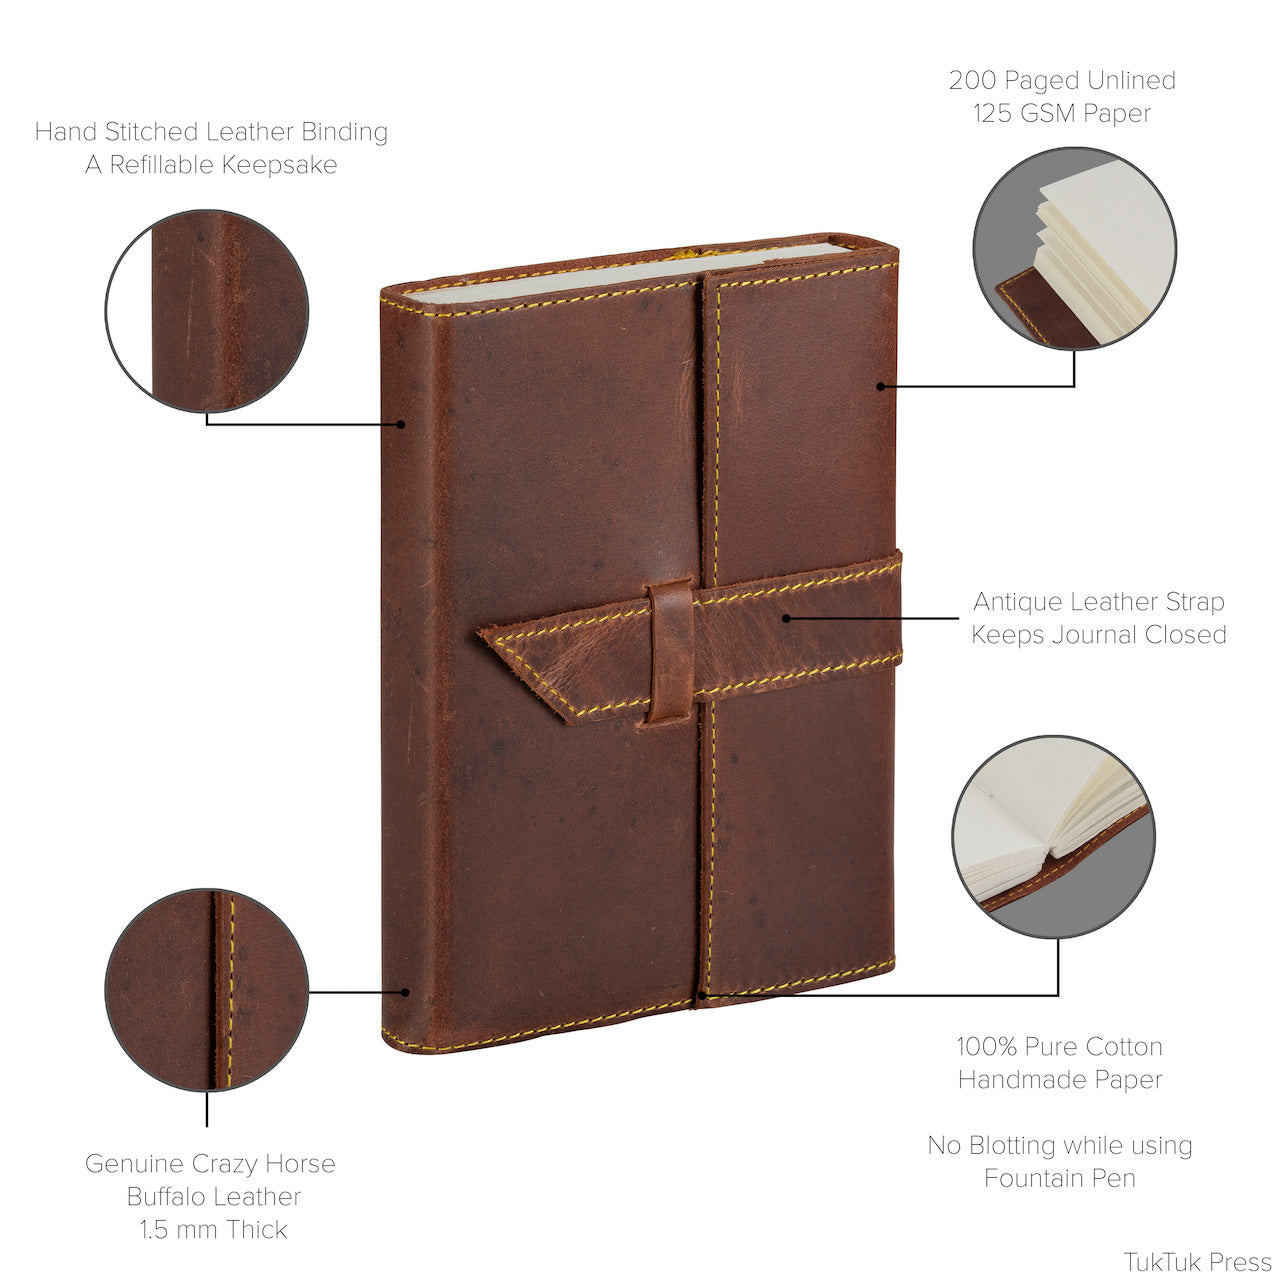 Handmade Luxury Pull-up Journal, 200 Thick Unlined Recycled Cotton Pages, Refillable